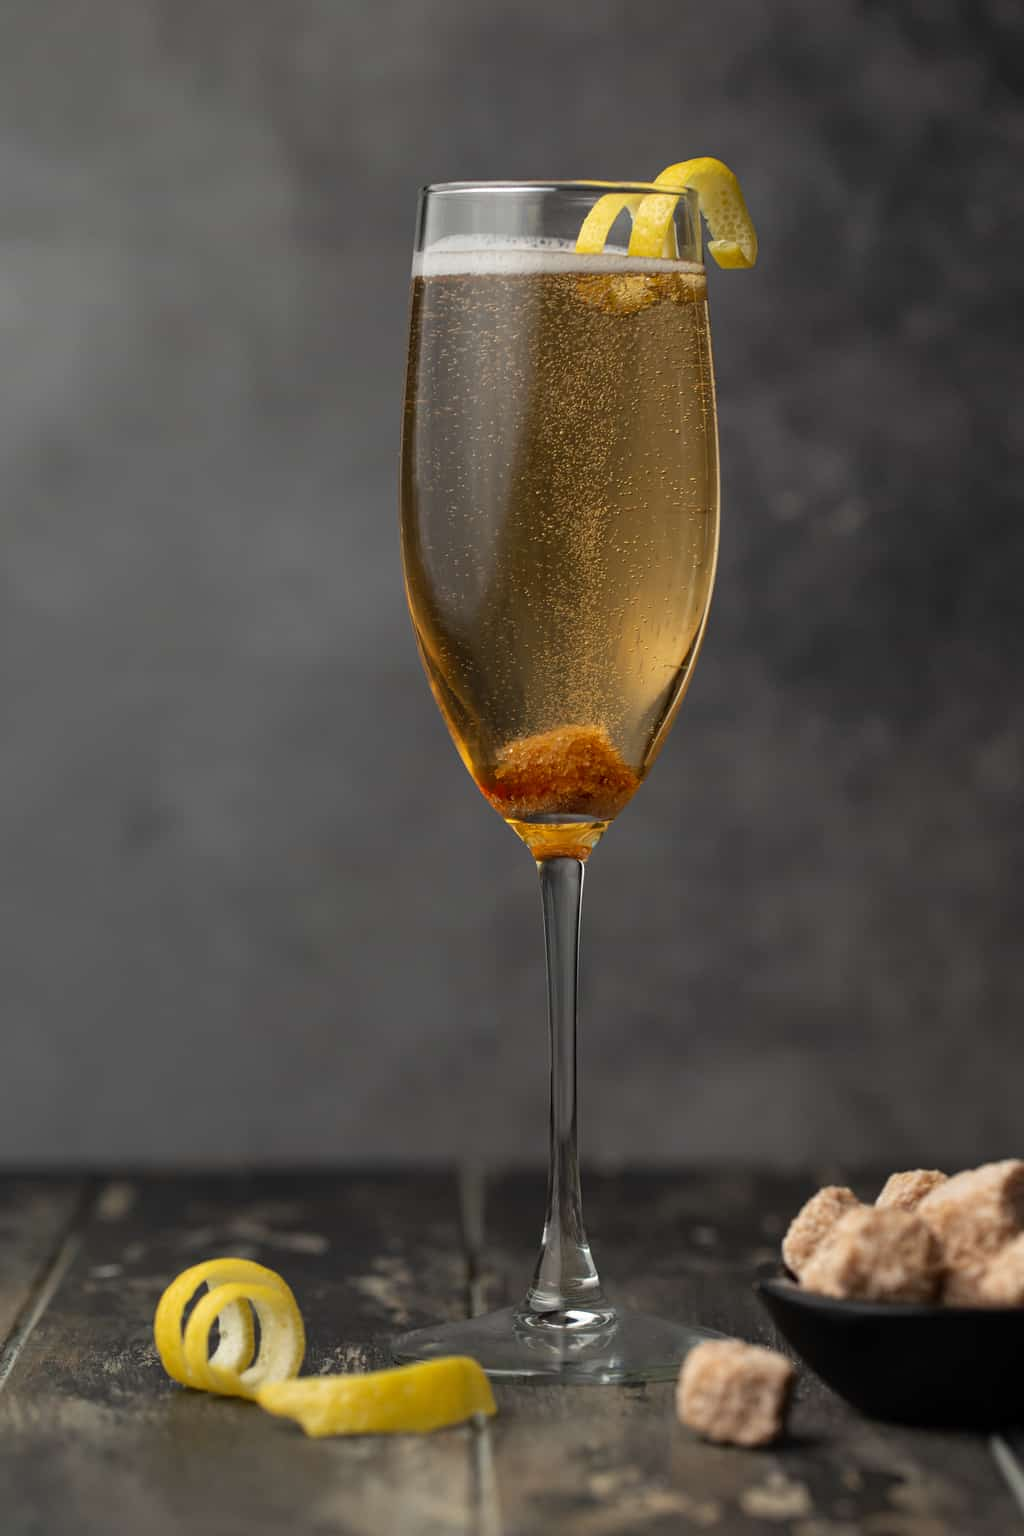 Single champagne flute filled with cocktail and garnished with lemon twist.